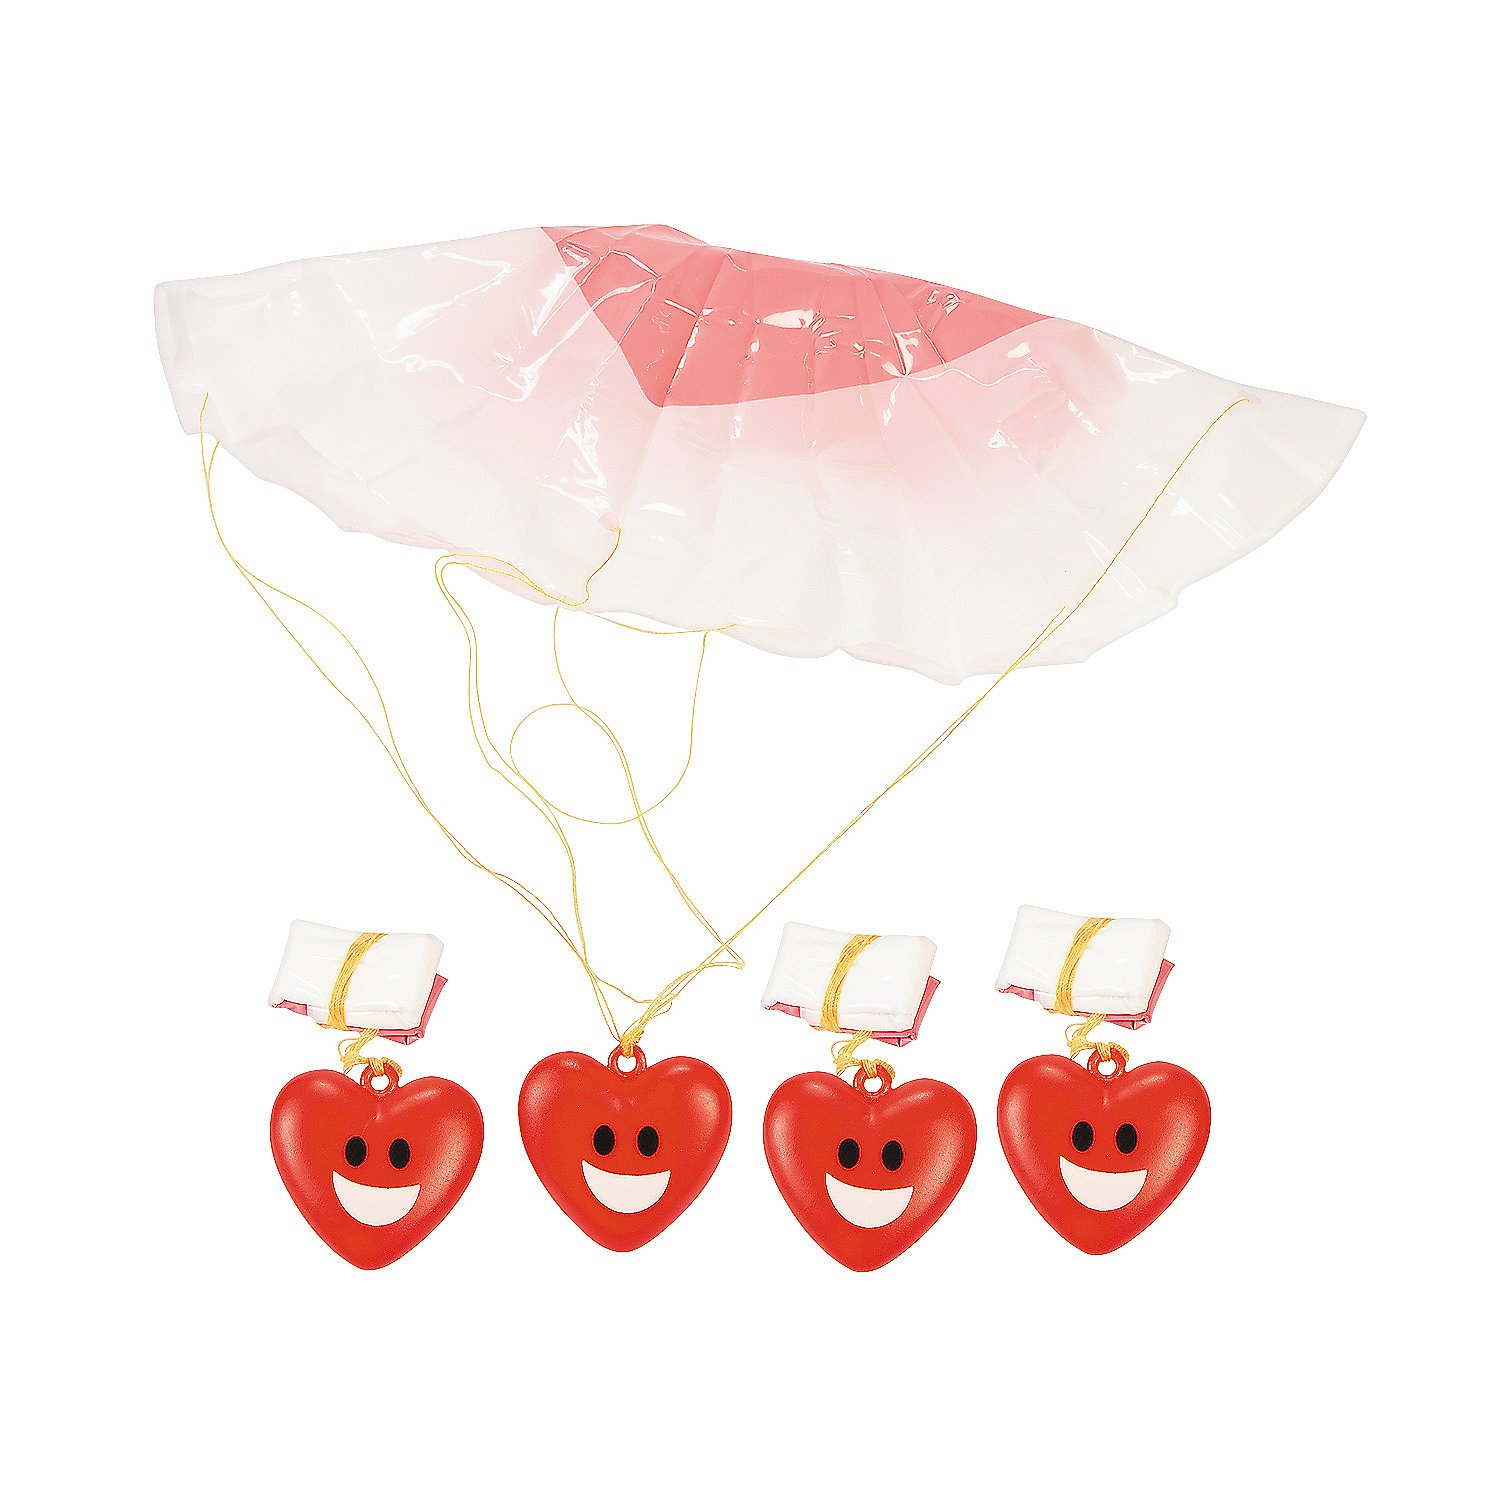 Fun Express - Valentine Paratrooper for Valentine's Day - Toys - Character Toys - Wind Ups & Paratroopers - Valentine's Day - 48 Pieces by Fun Express